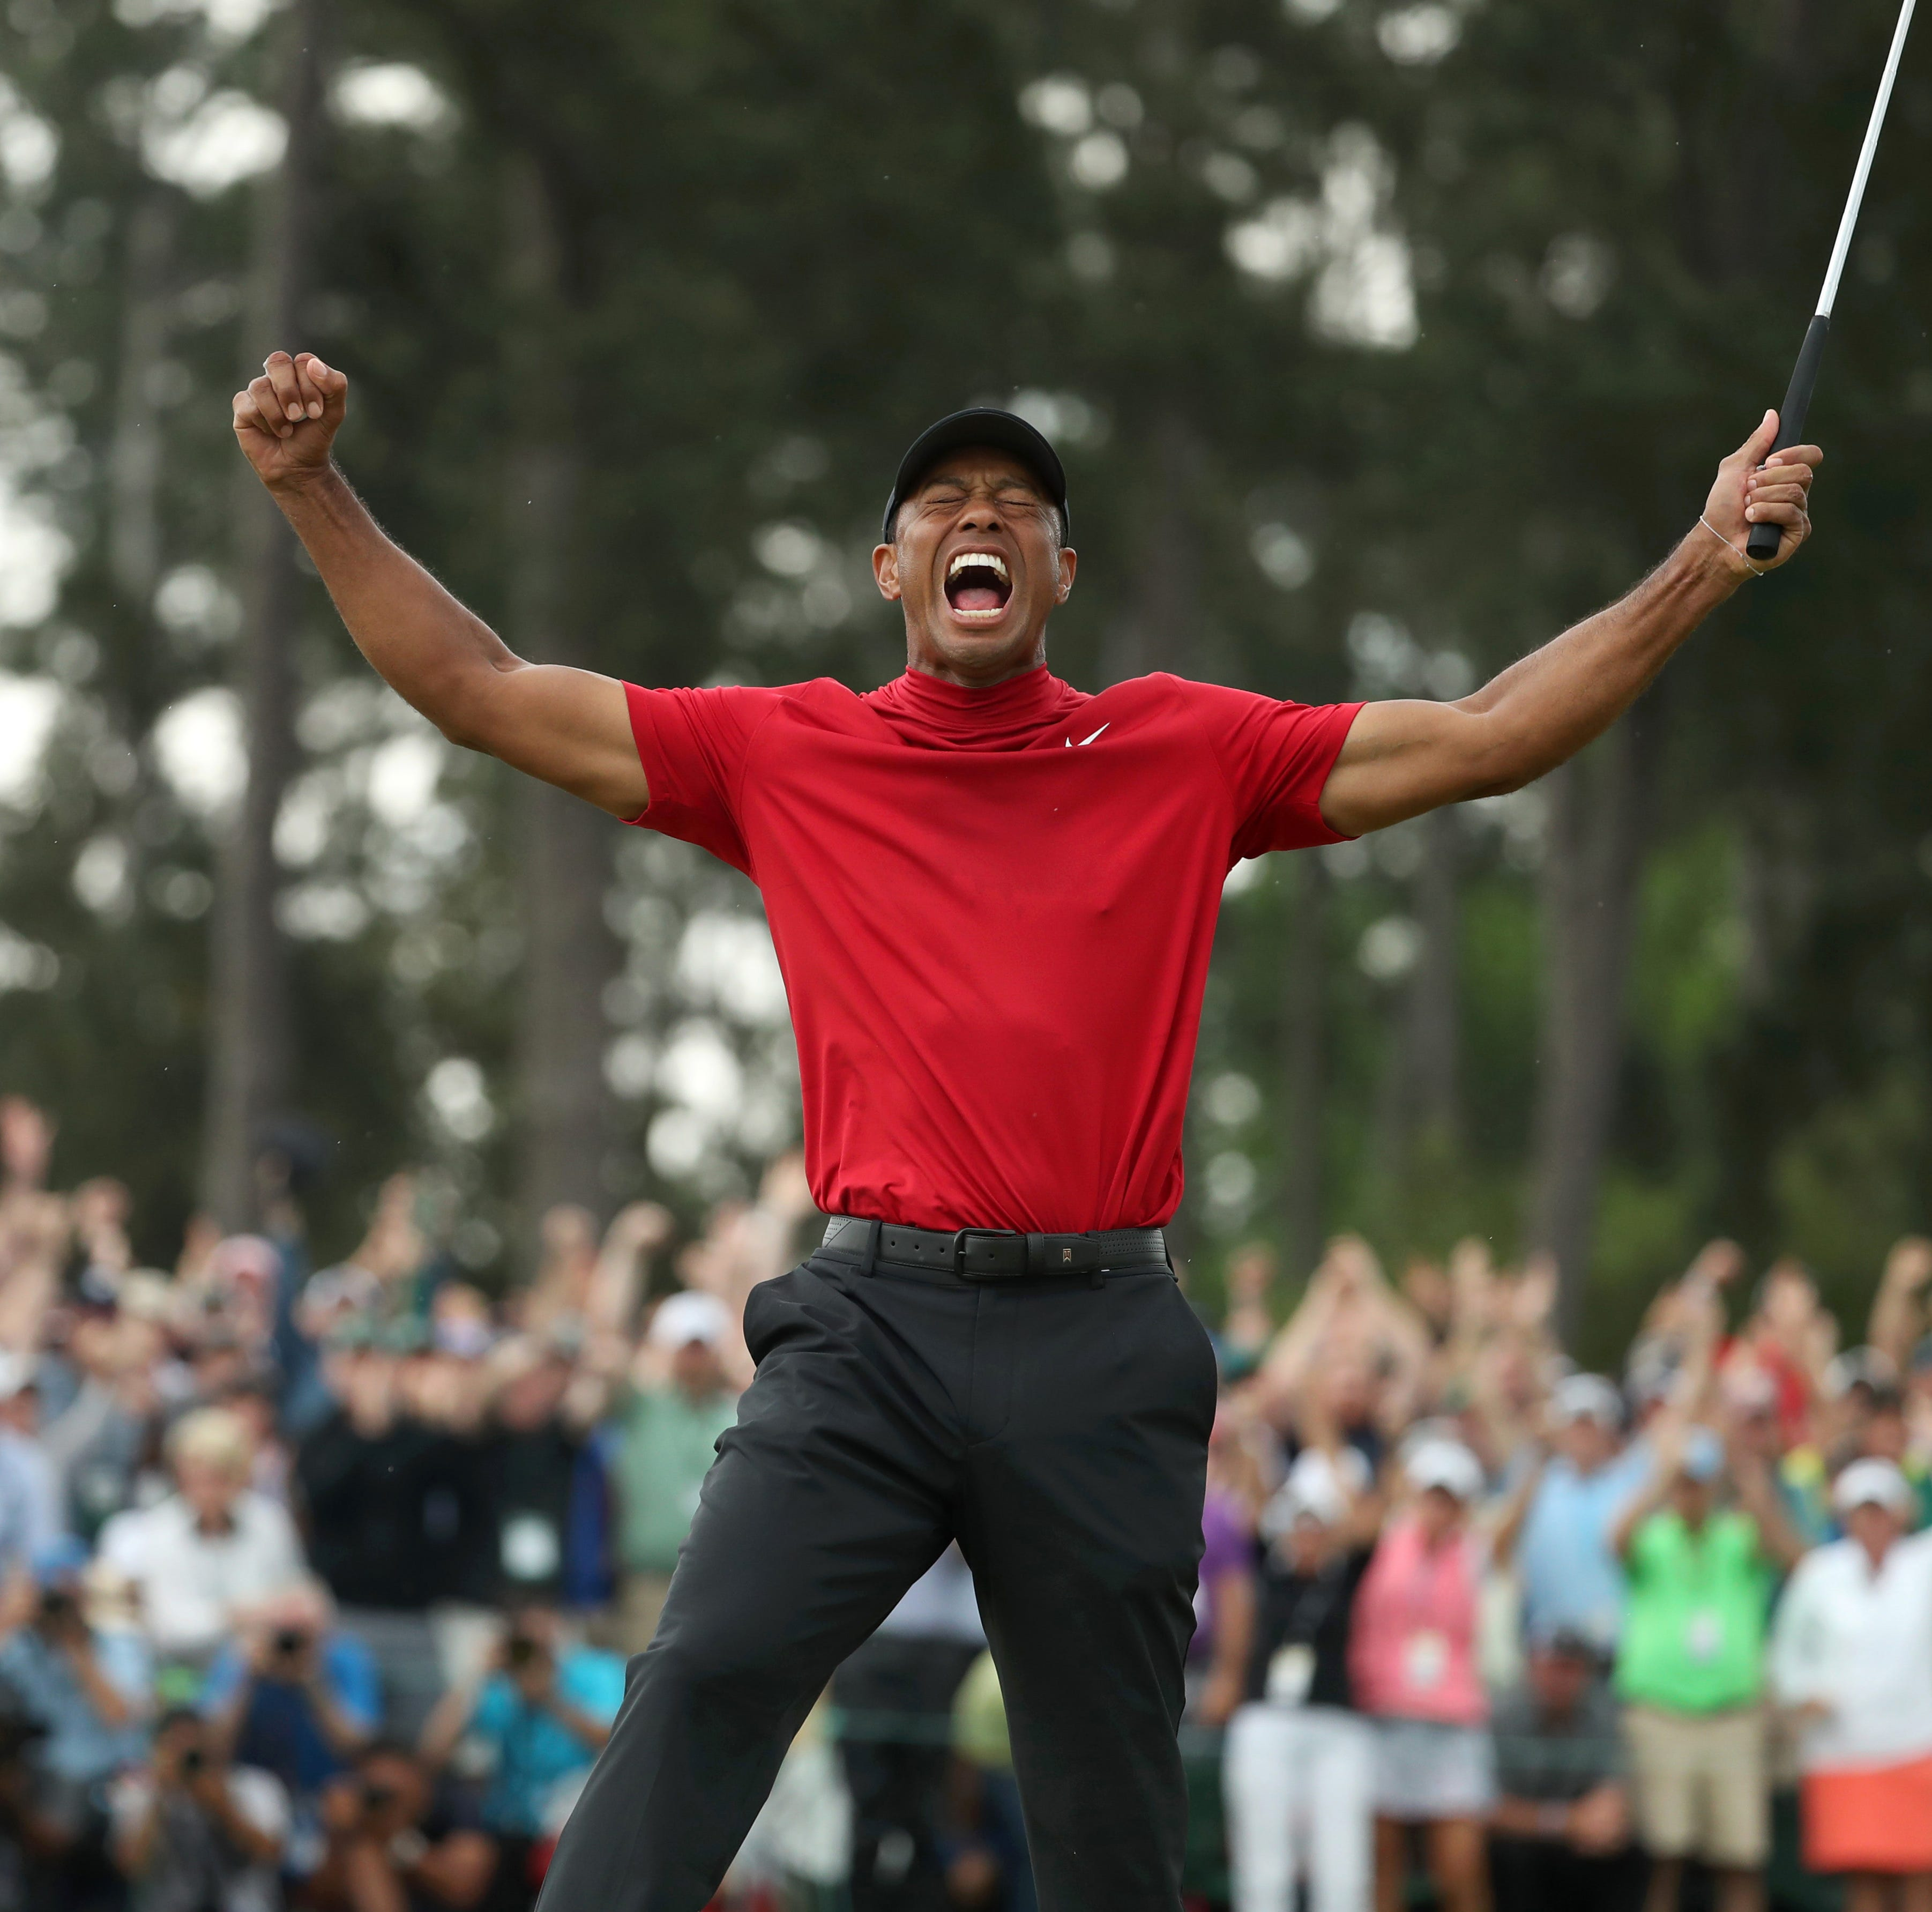 Tiger Woods revitalizes the game of golf with Masters win